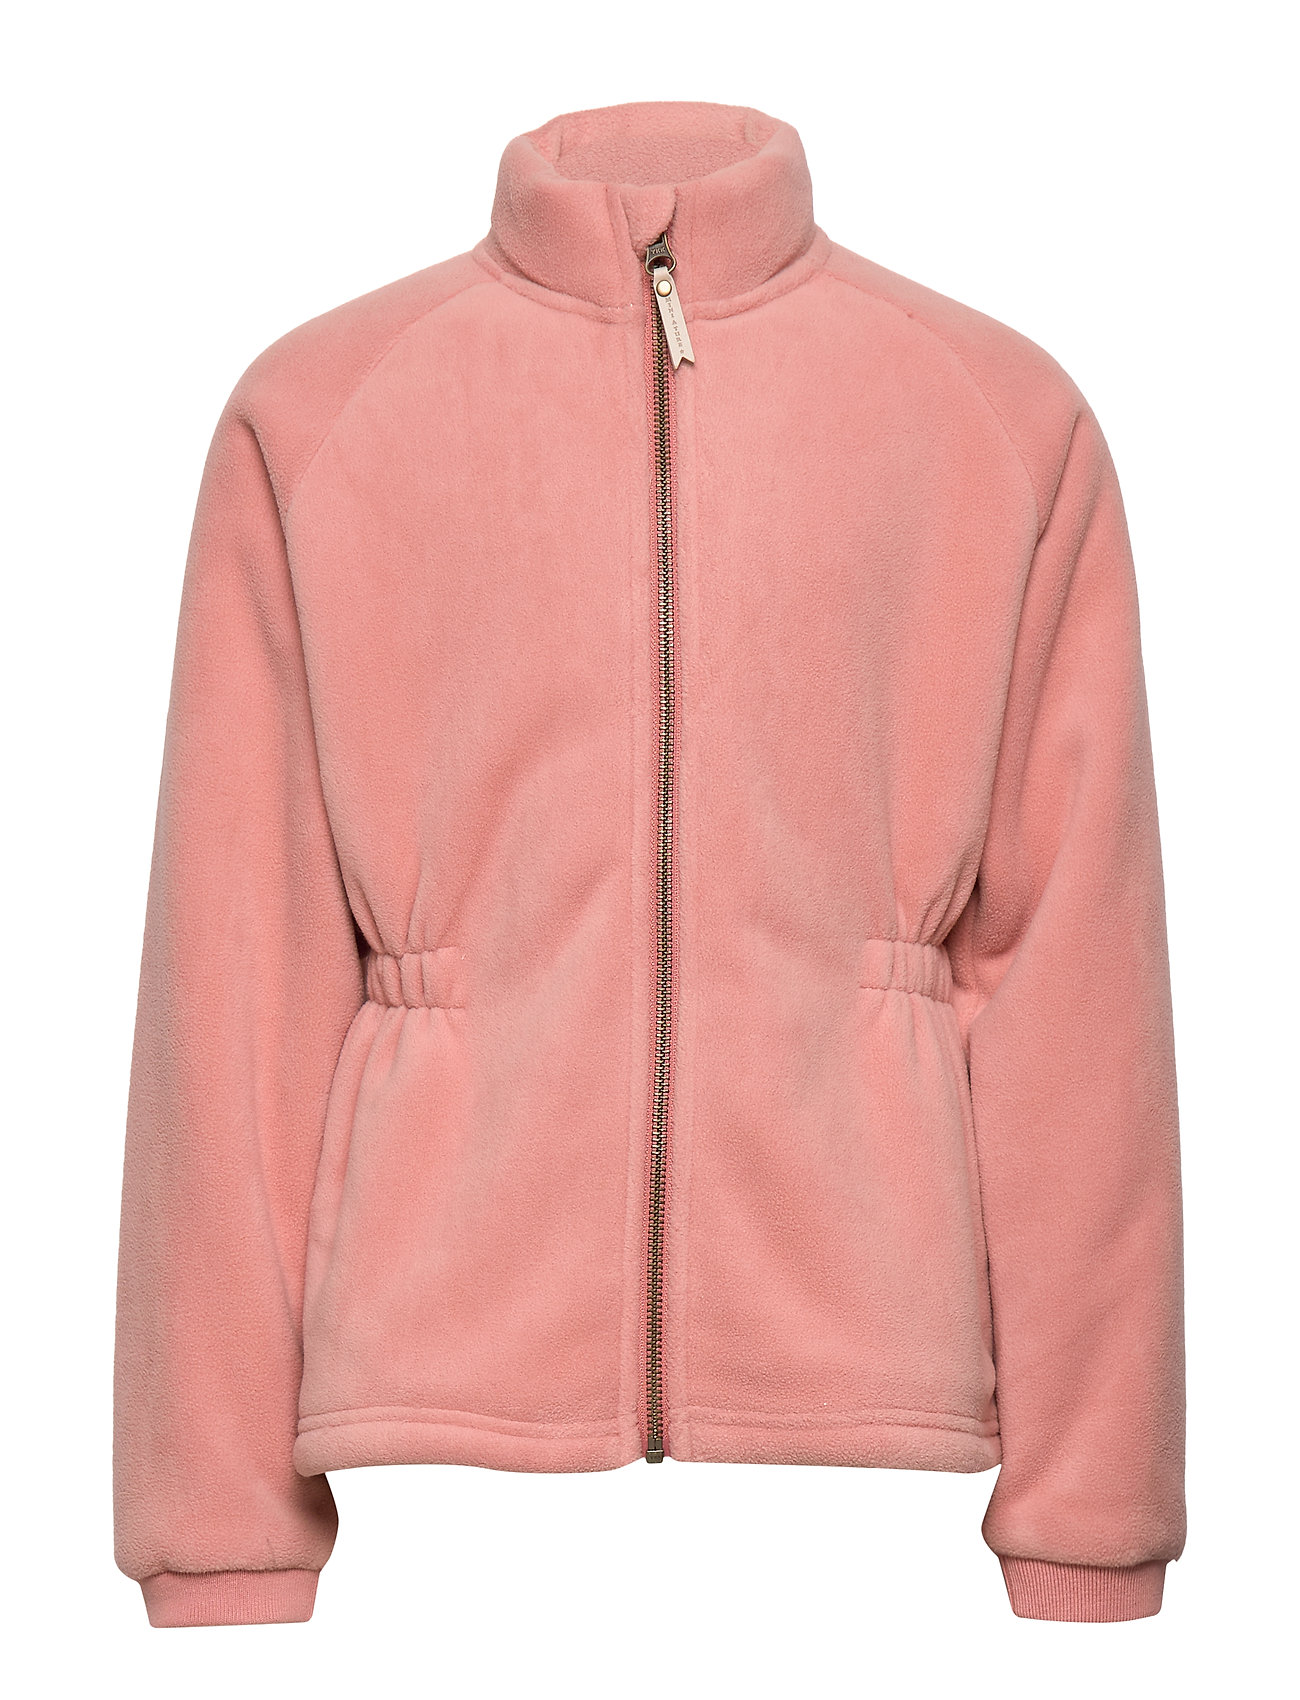 Mini A Ture Iola Zip Jacket, MK - OLD ROSE